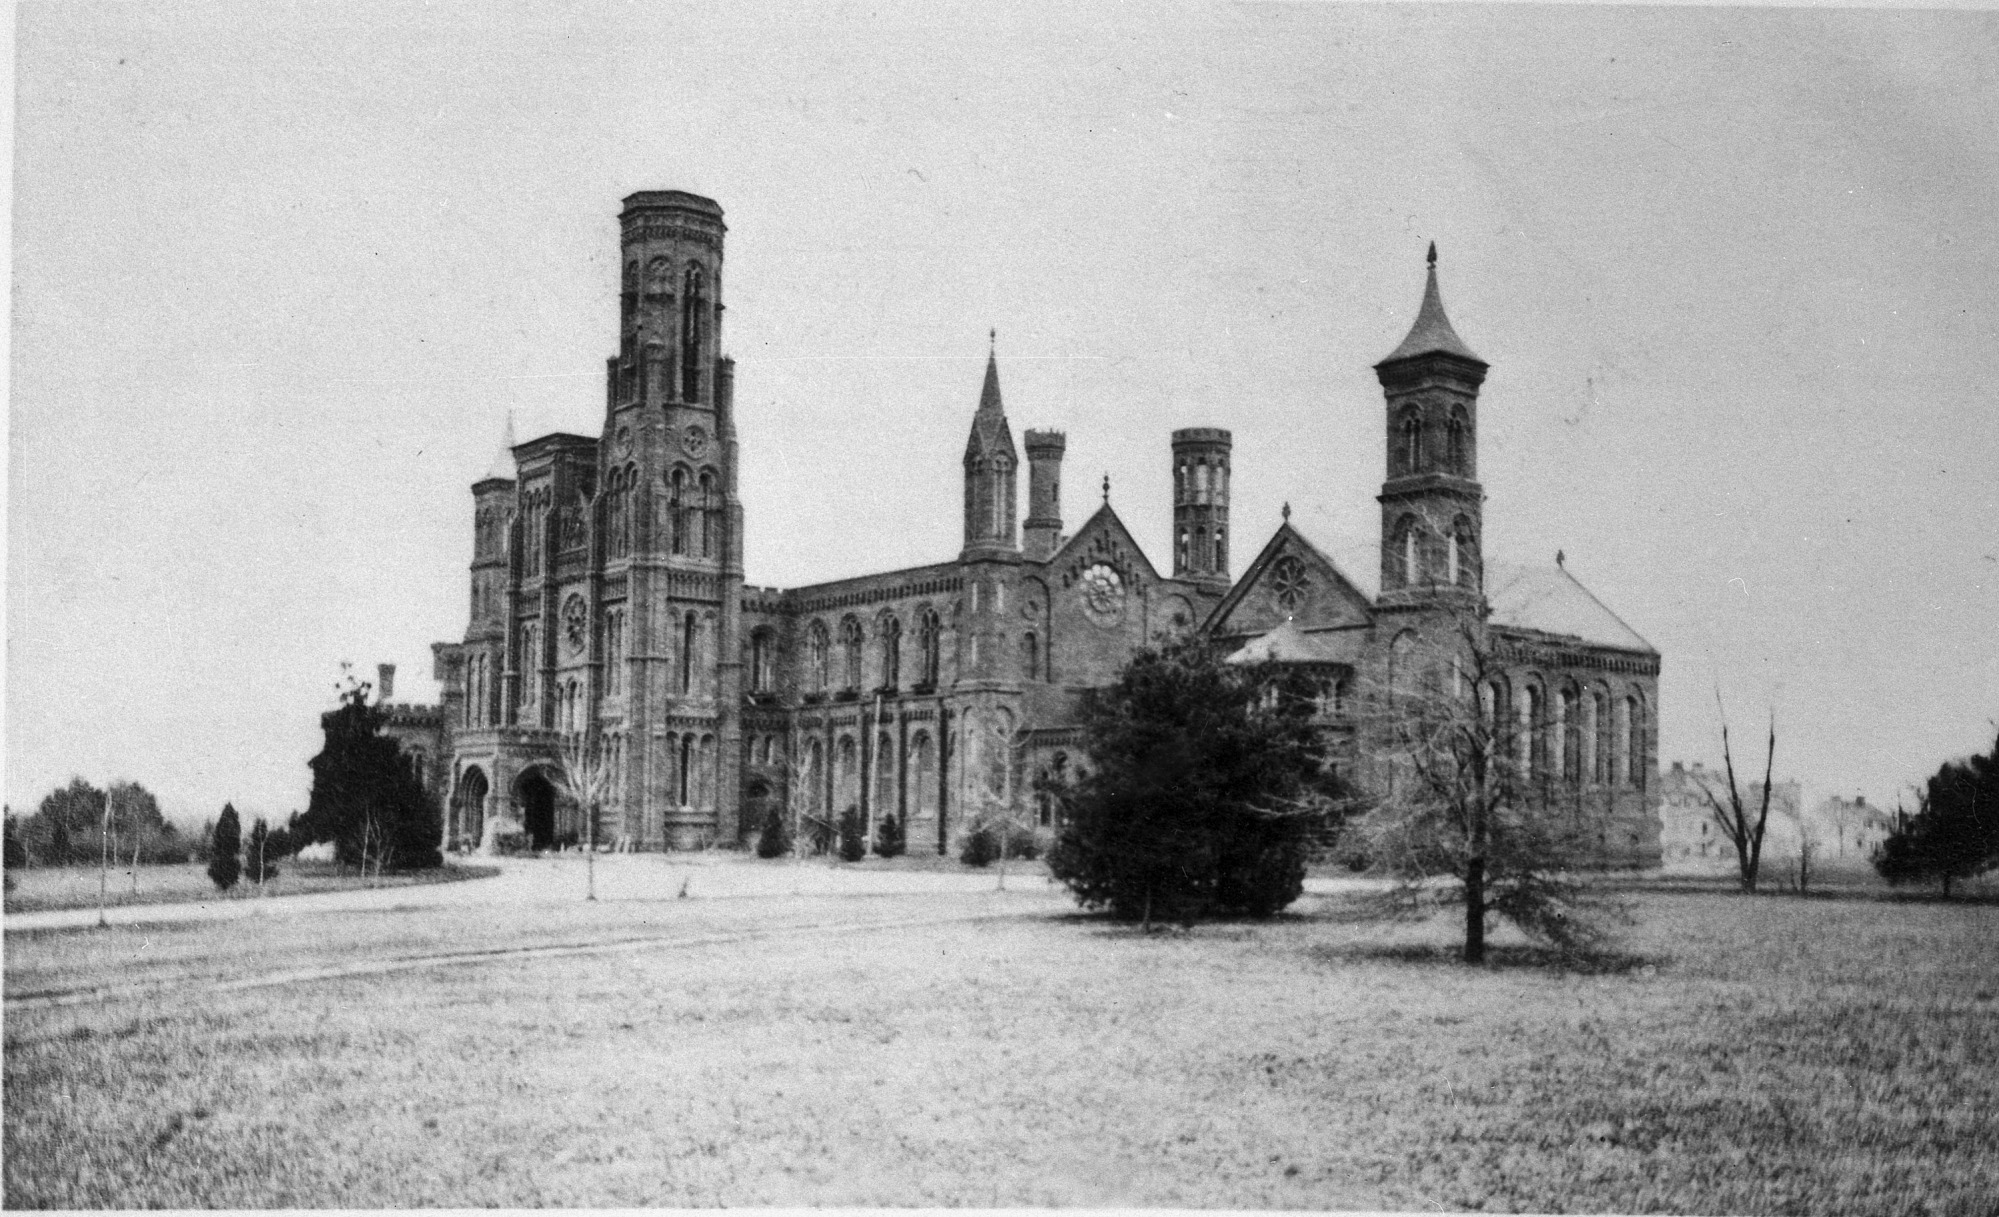 Photograph of Smithsonian Institution Building shortly after the fire of January 1865. Smithsonian Institution Archives, negative number mah-30792a.